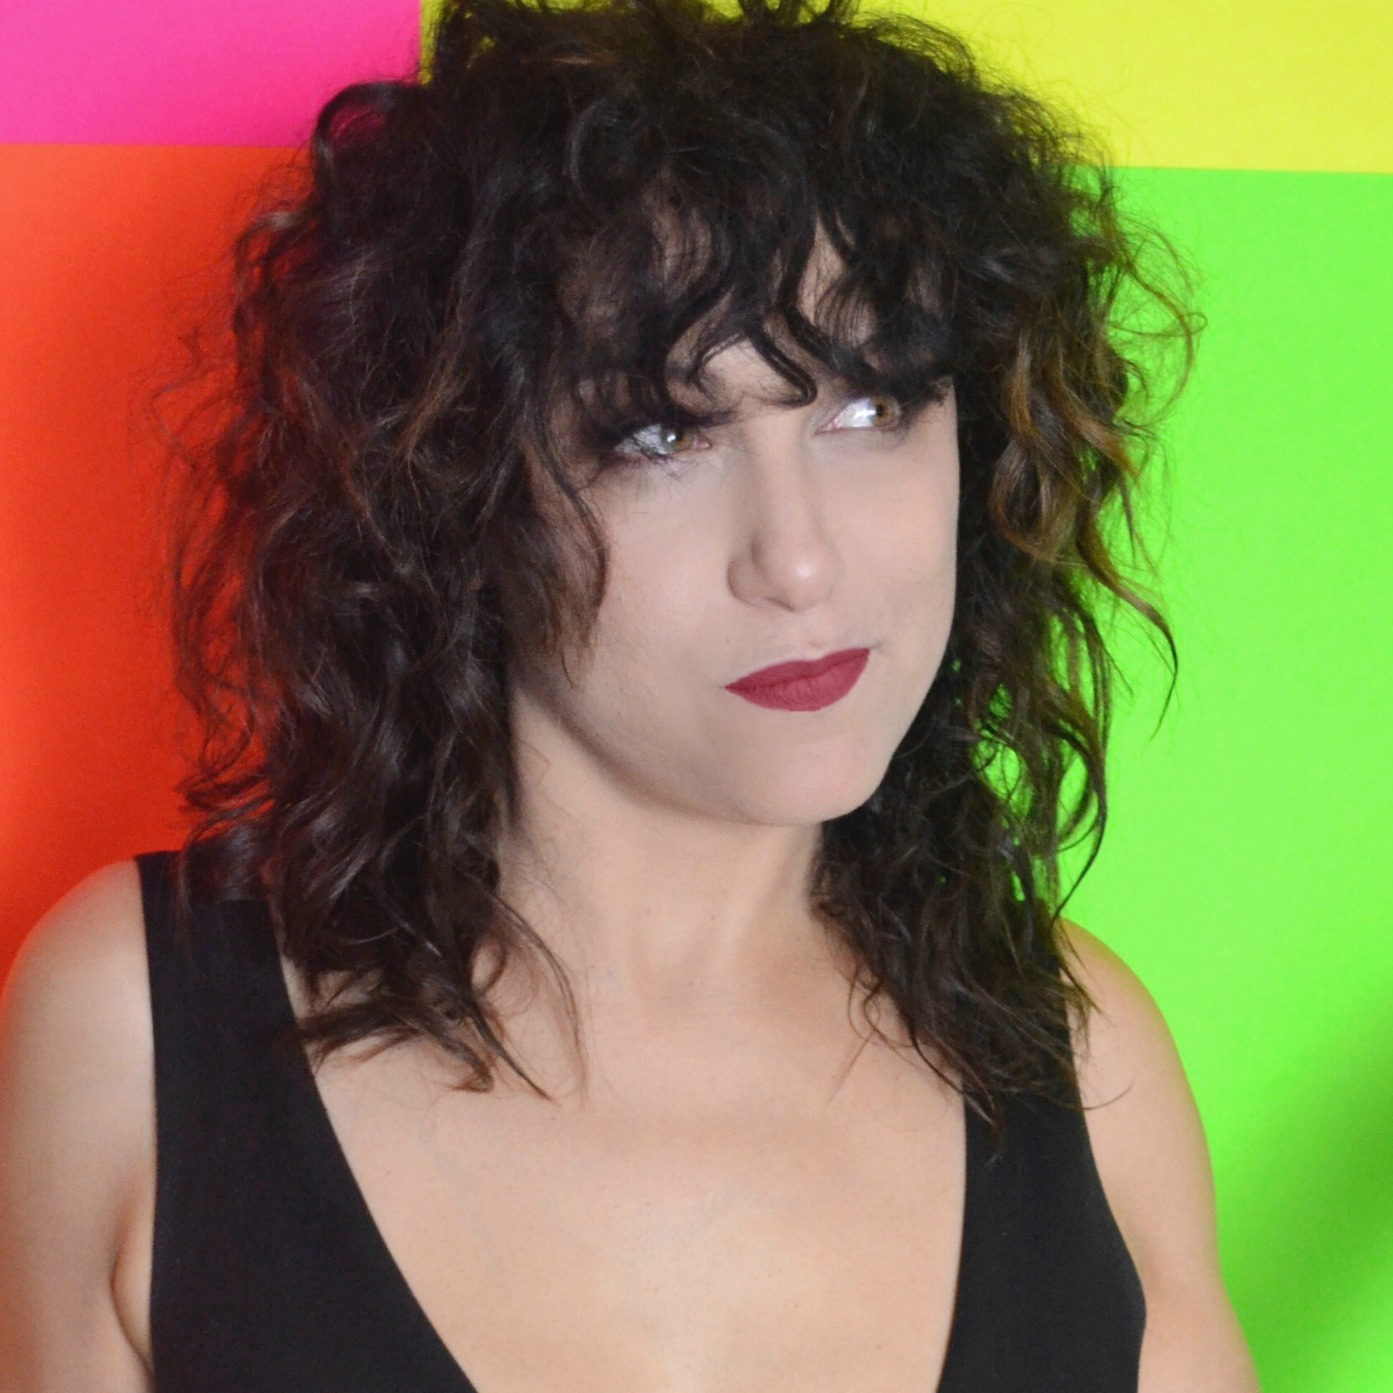 Christina Conner - Christina is a co-host of My Worst Date podcast. She's also a sales director by day, and lead vocalist for the band Modern Bronze.